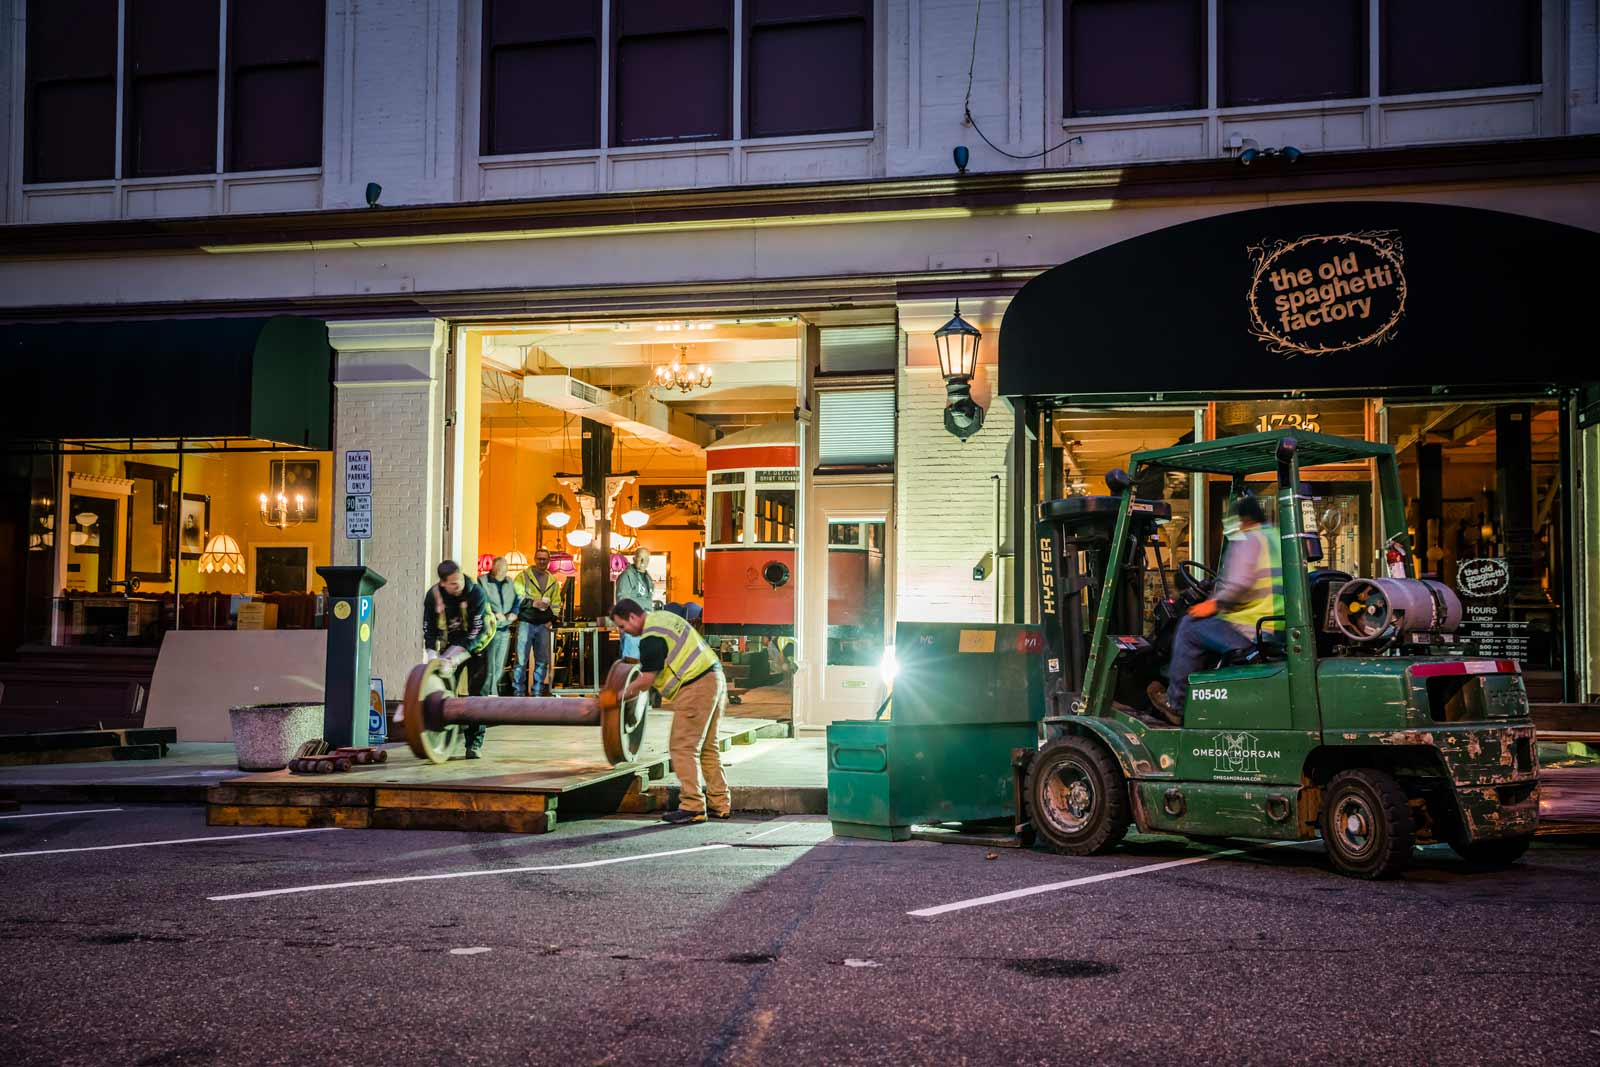 outside the Old Spaghetti Factory, Omega Morgan crews wrap up equipment in the evening